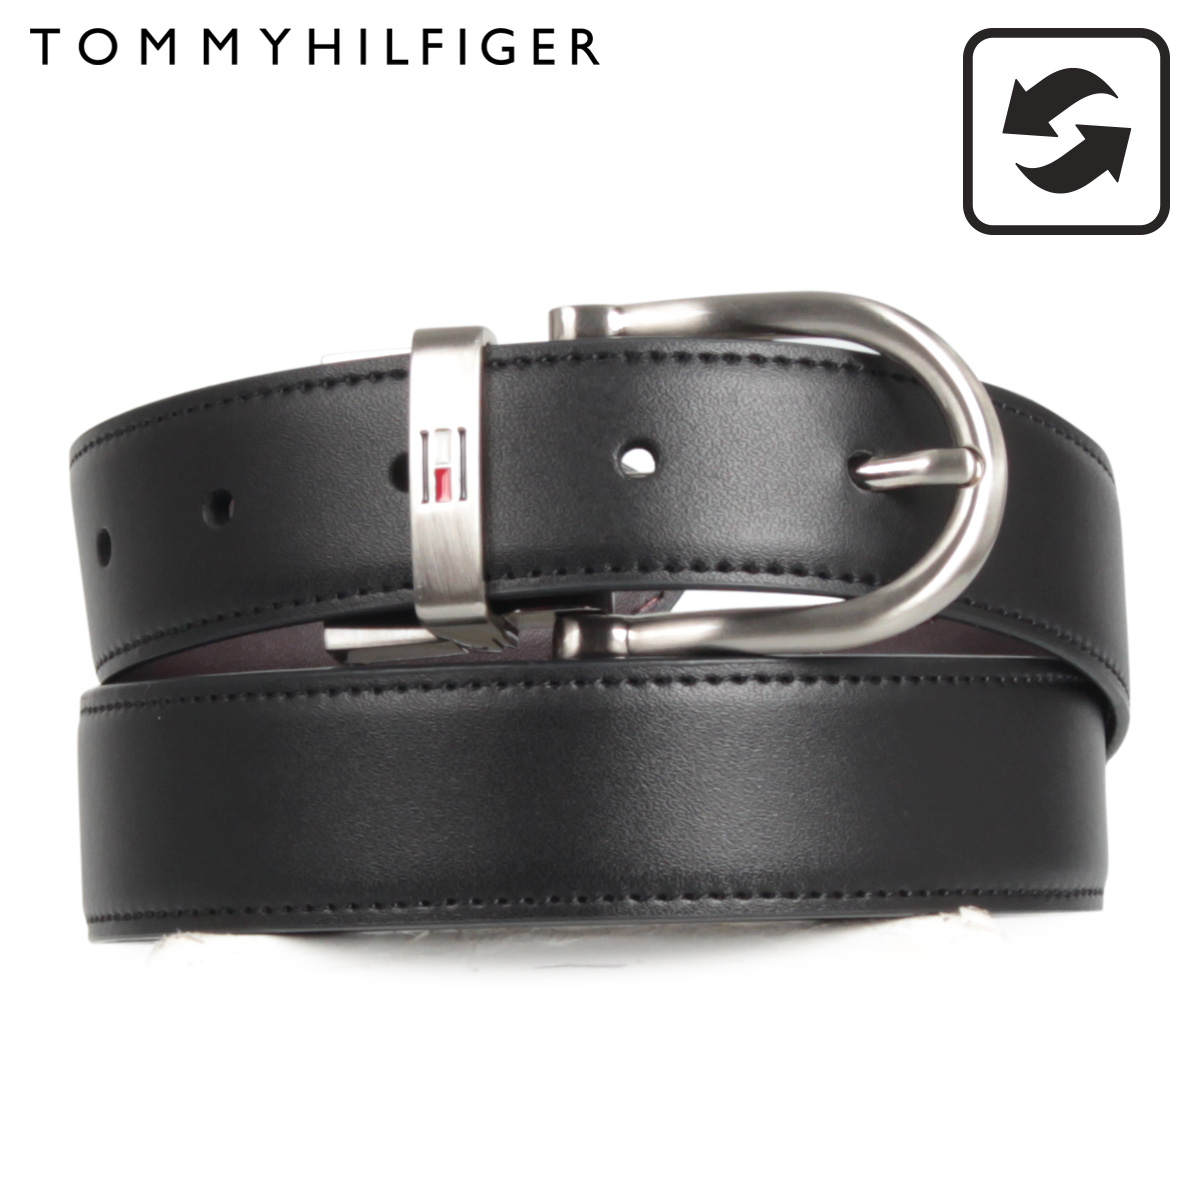 トミーヒルフィガー TOMMY HILFIGER belt leather belt set men reversible REVERIBLE BELT WHIT BOX black brown black 11TL08X012 014 [1129 Shinnyu load]